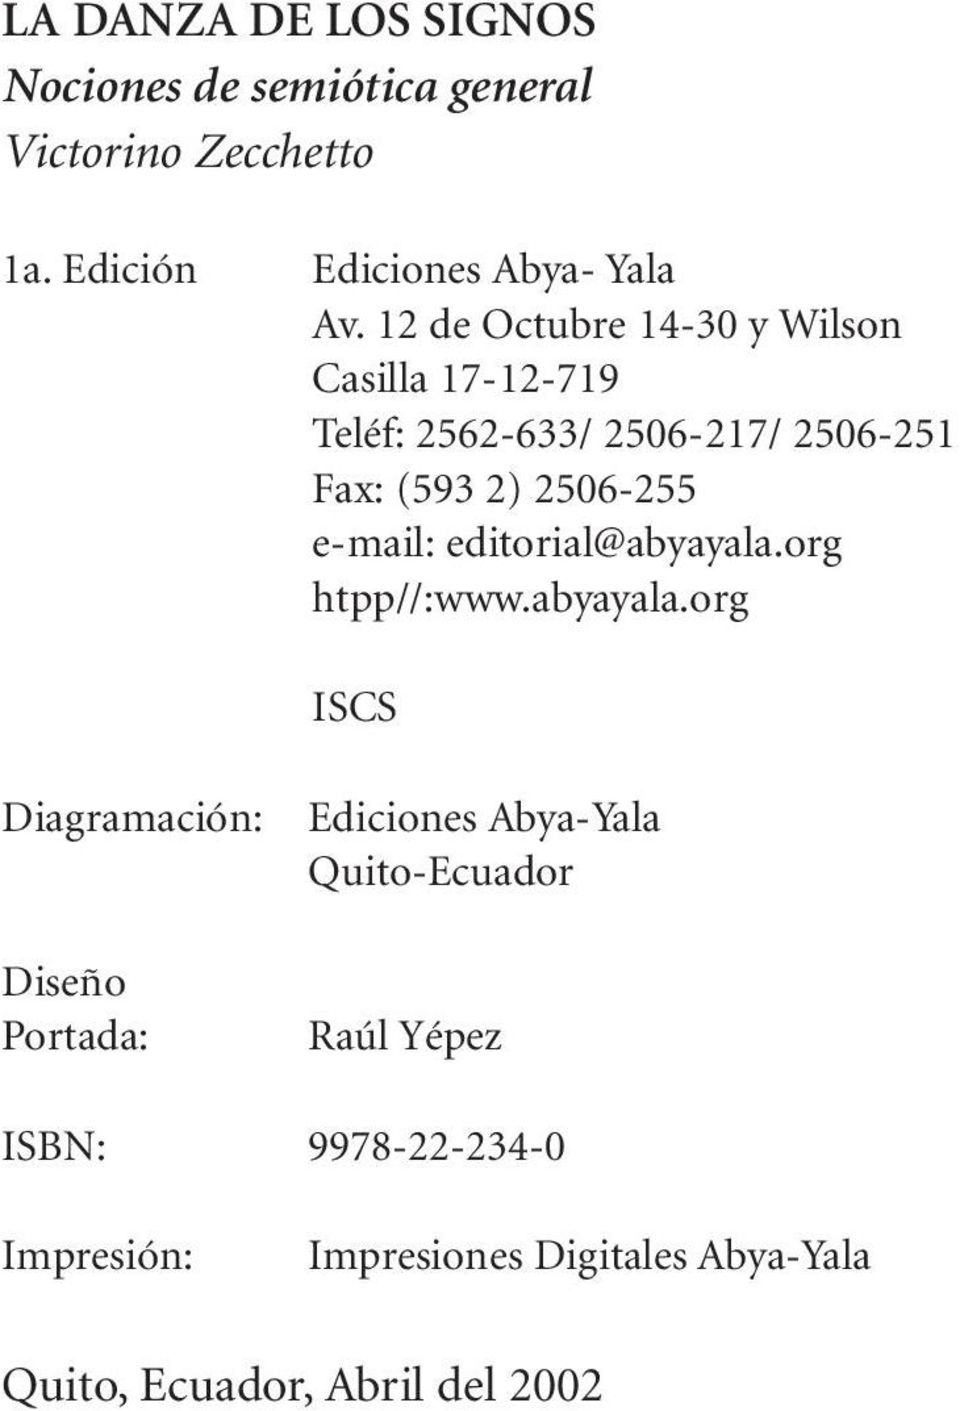 e-mail: editorial@abyayala.